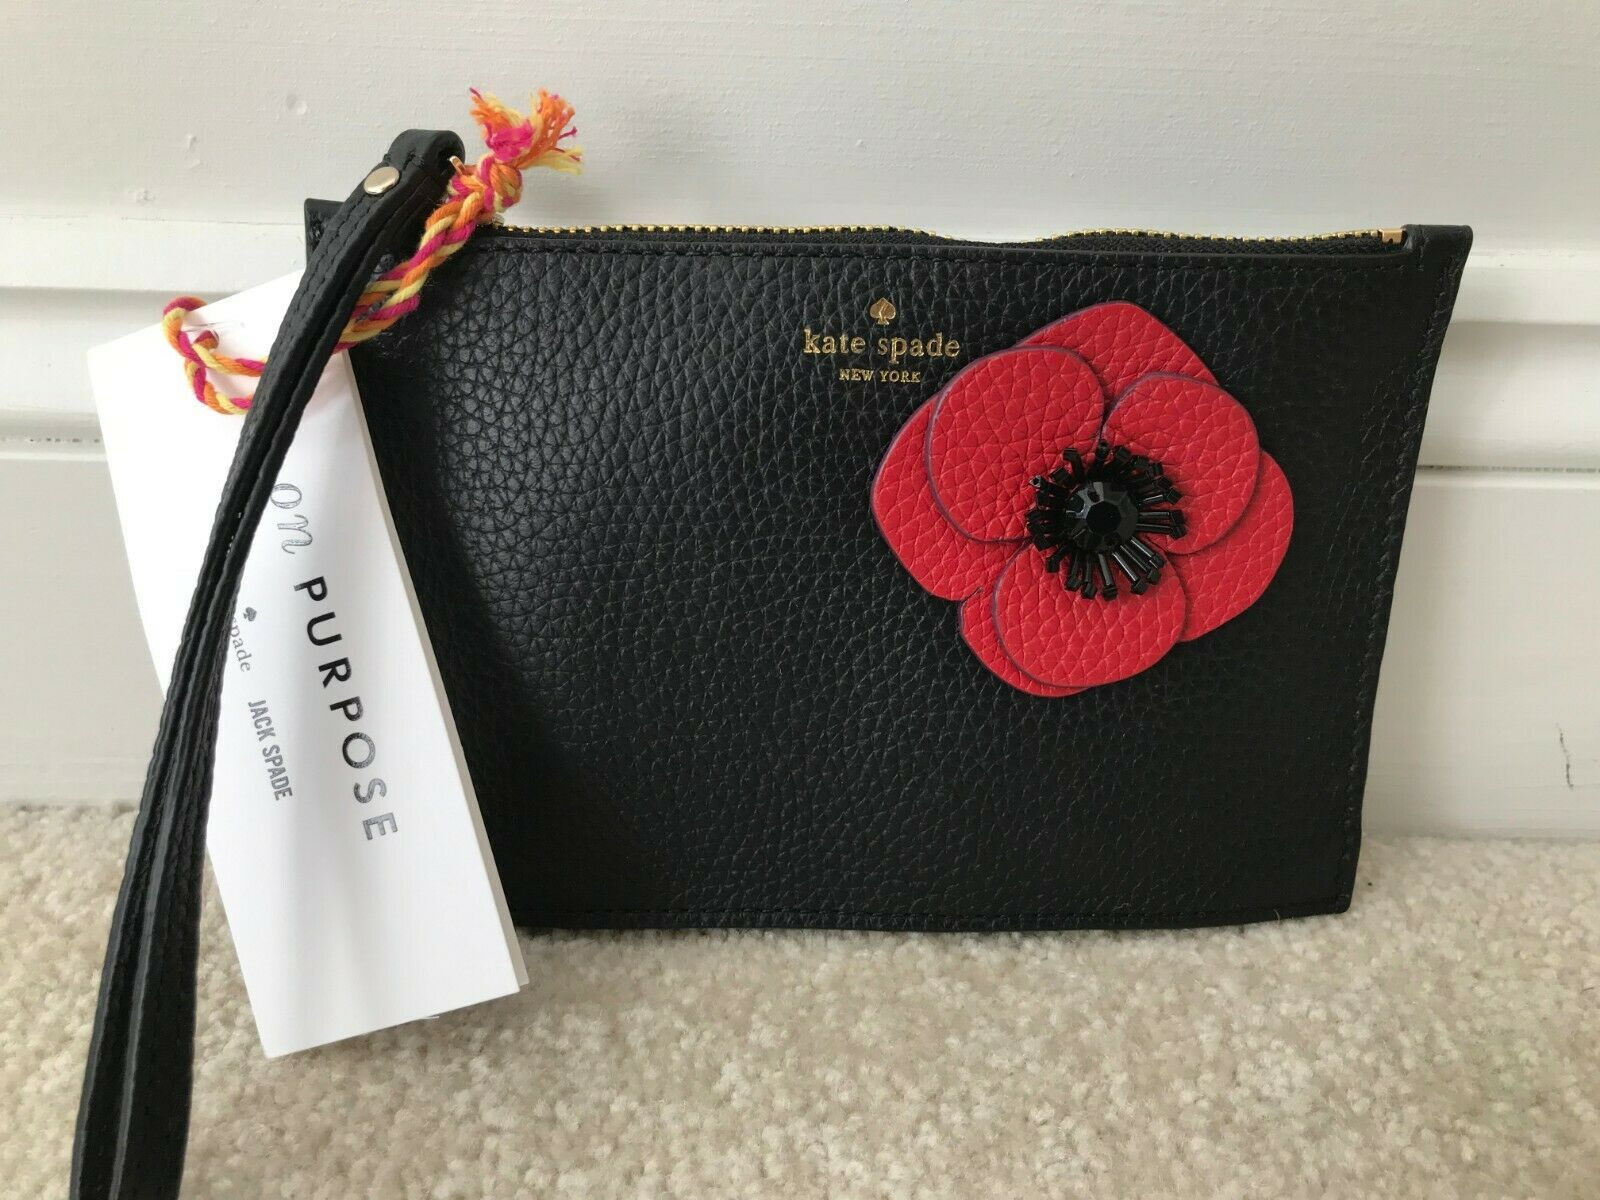 Kate spade on purpose applique red flower black pebble leather